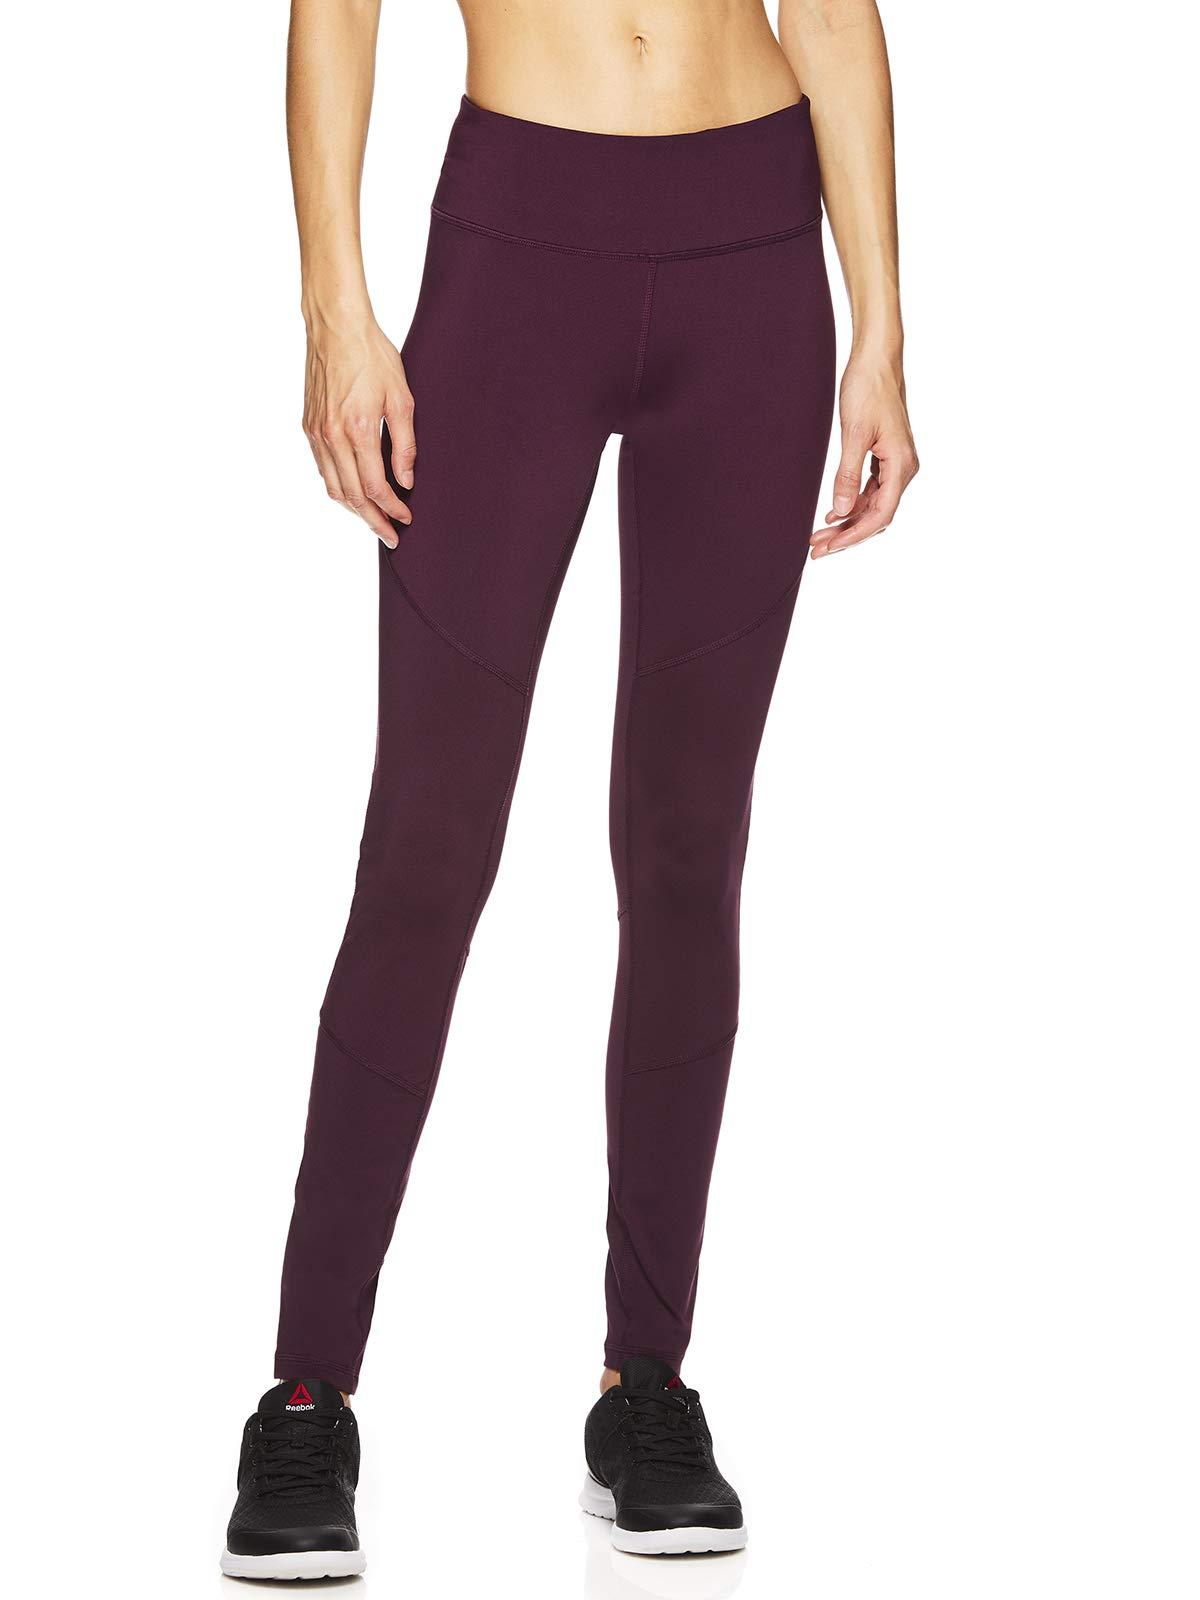 Reebok Women's Leggings Full Length Performance Compression Pants - Athletic Workout Leggings for Women for Gym & Sports - Vision Legging Potent Purple, X-Small by Reebok